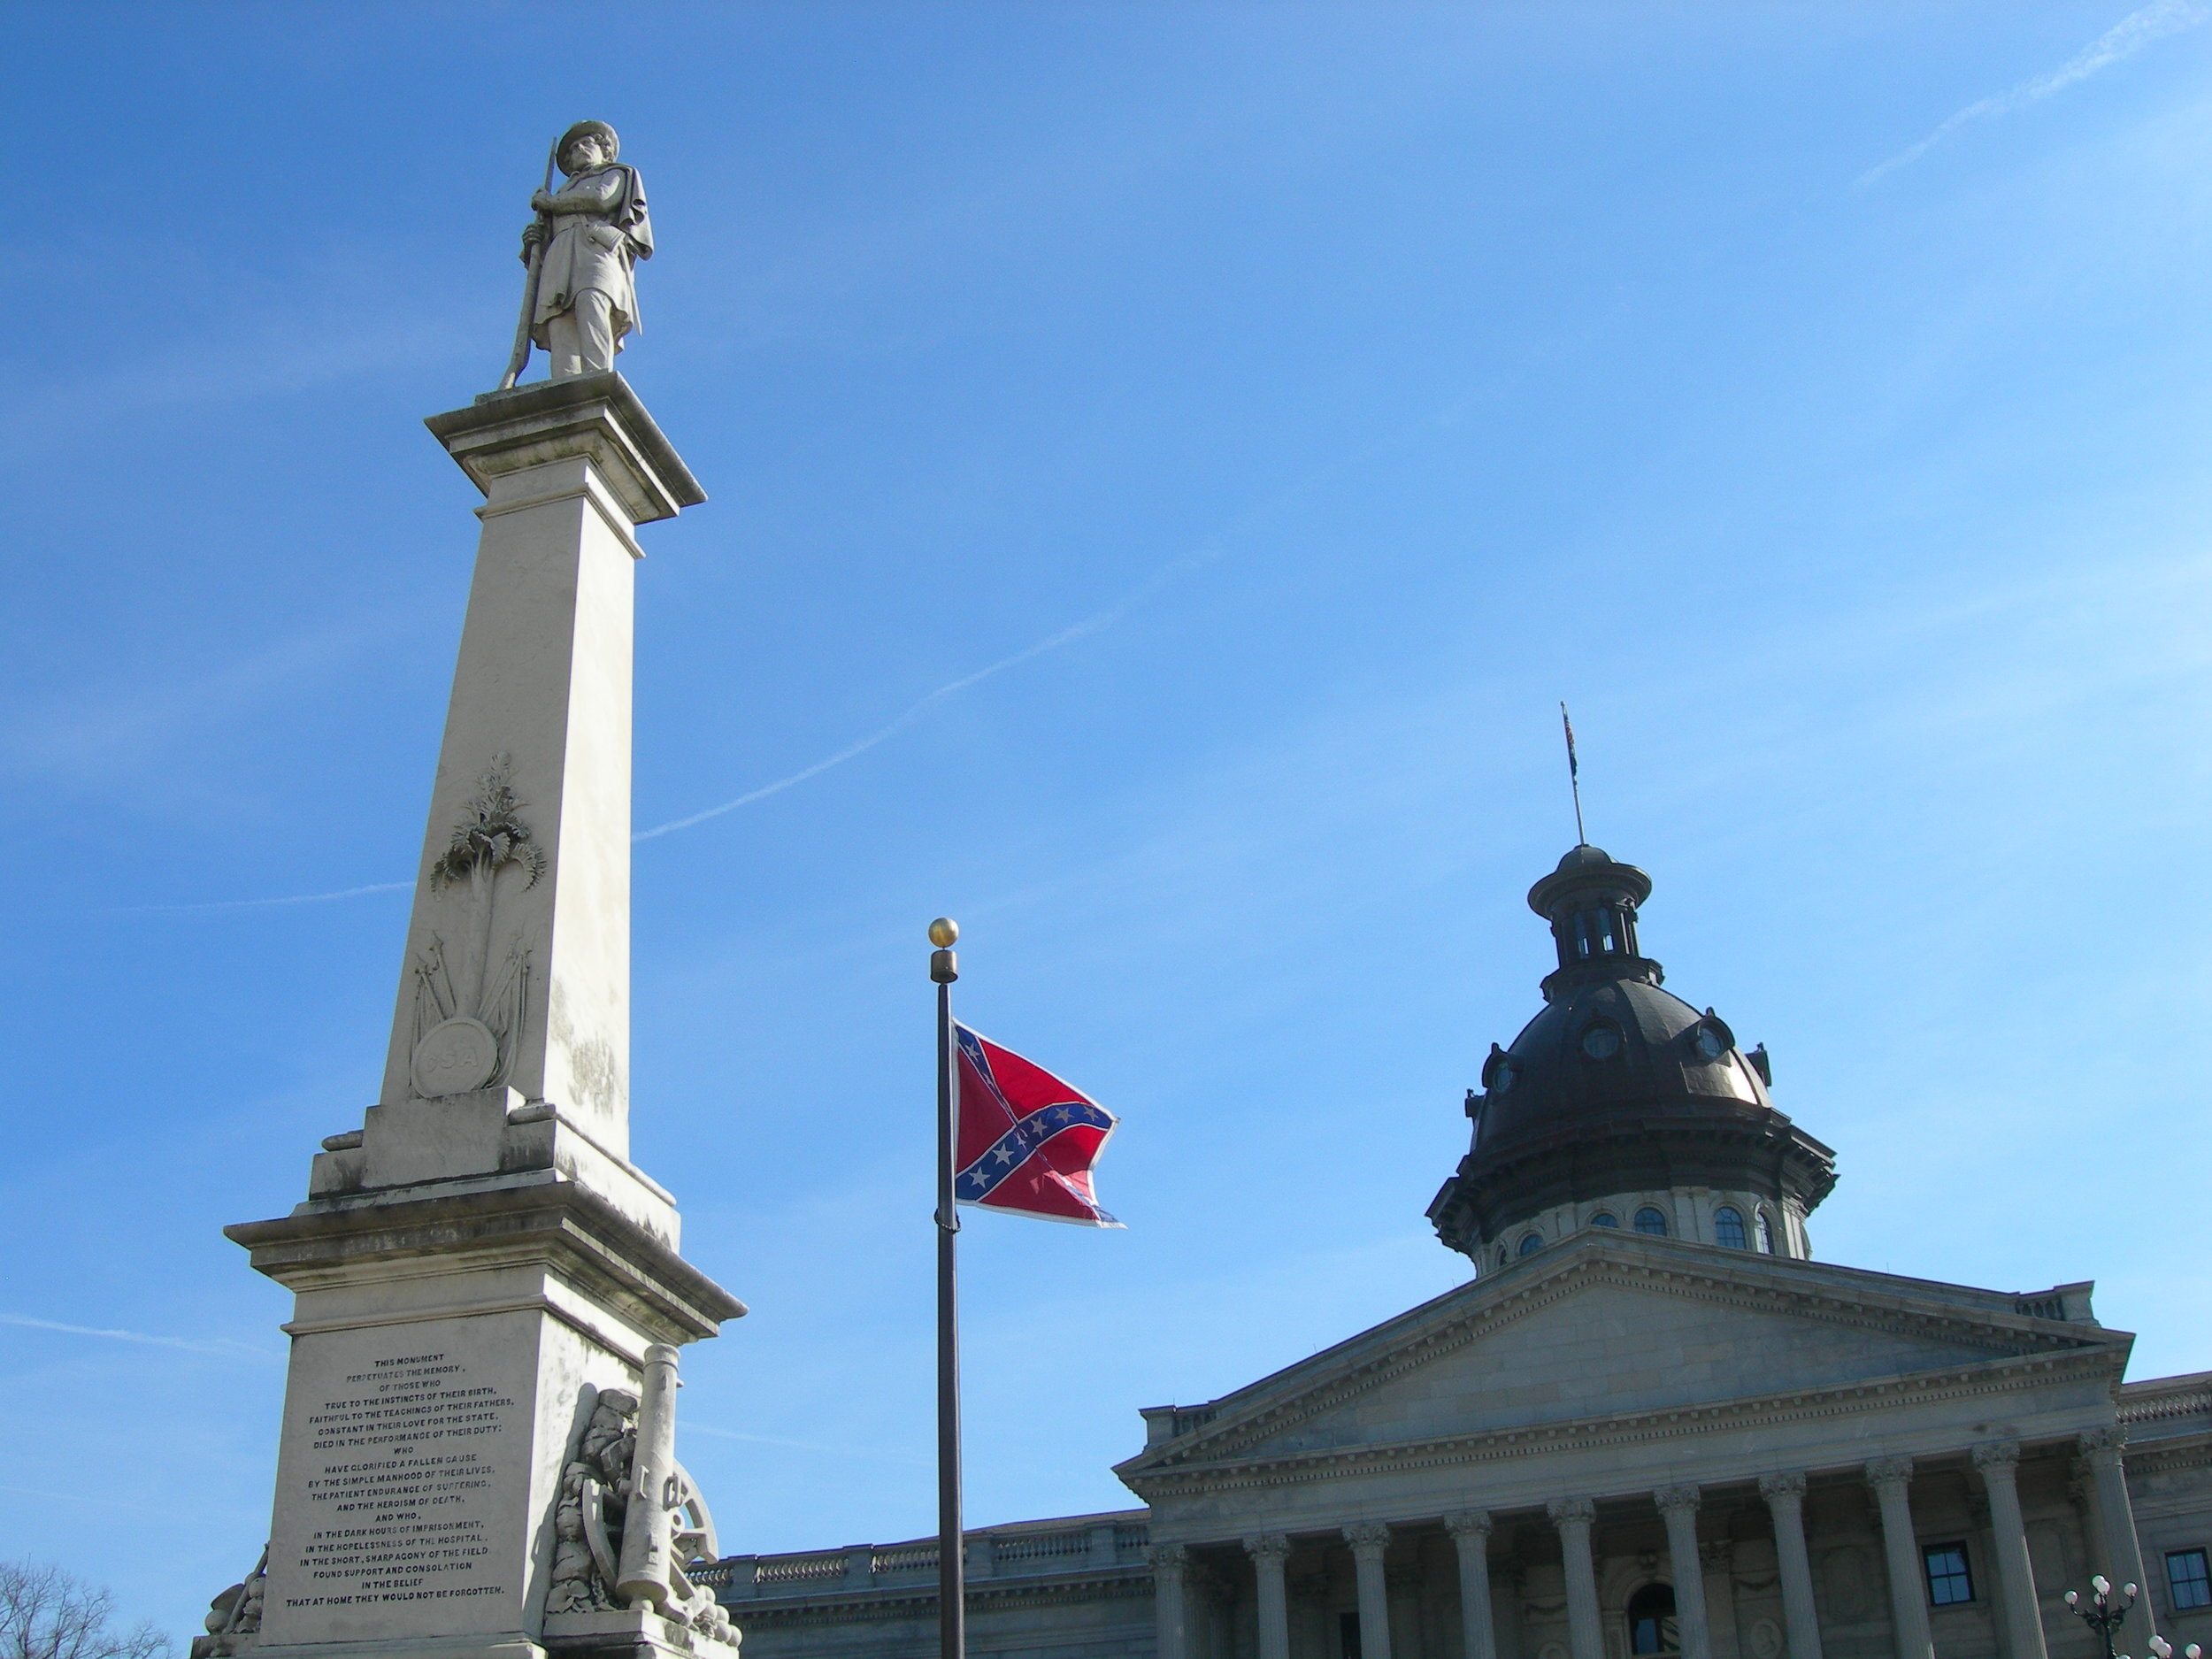 Image of the South Carolina Statehouse taken in 2007. The Confederate flag was removed from the Statehouse in 2015 after nine black parishioners were murdered in a mass shooting in Charleston.  Photo courtesy of Jimmy Emerson.